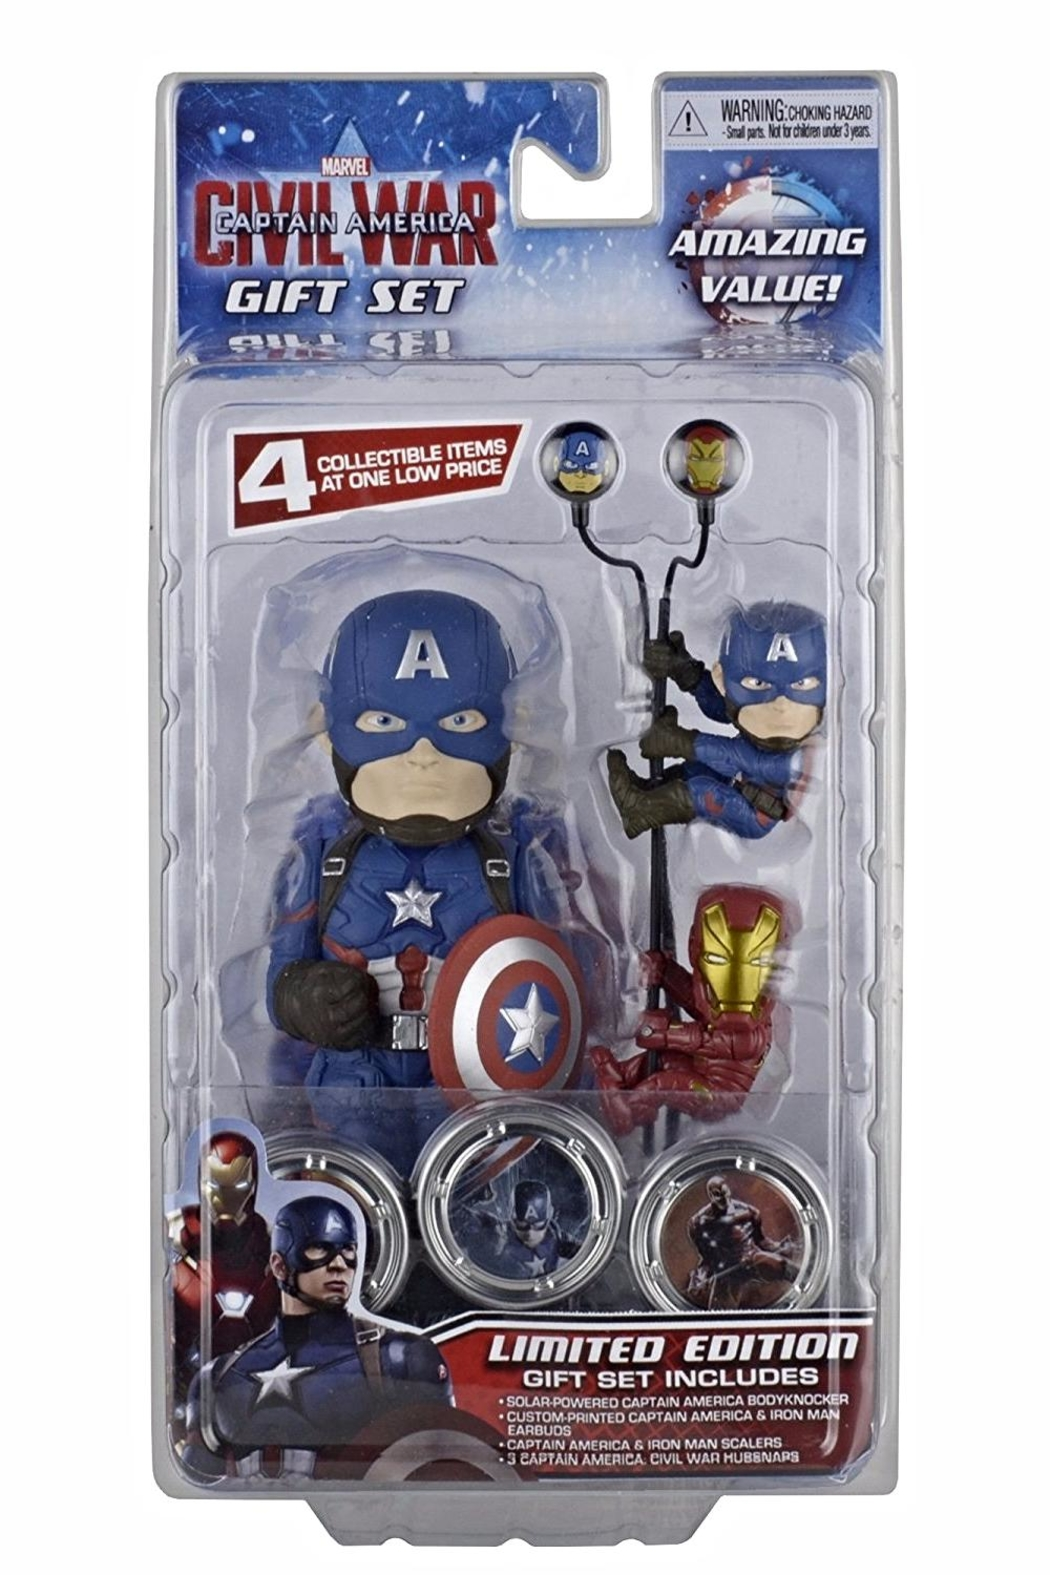 NECA Captain America Gift Set - Main Image